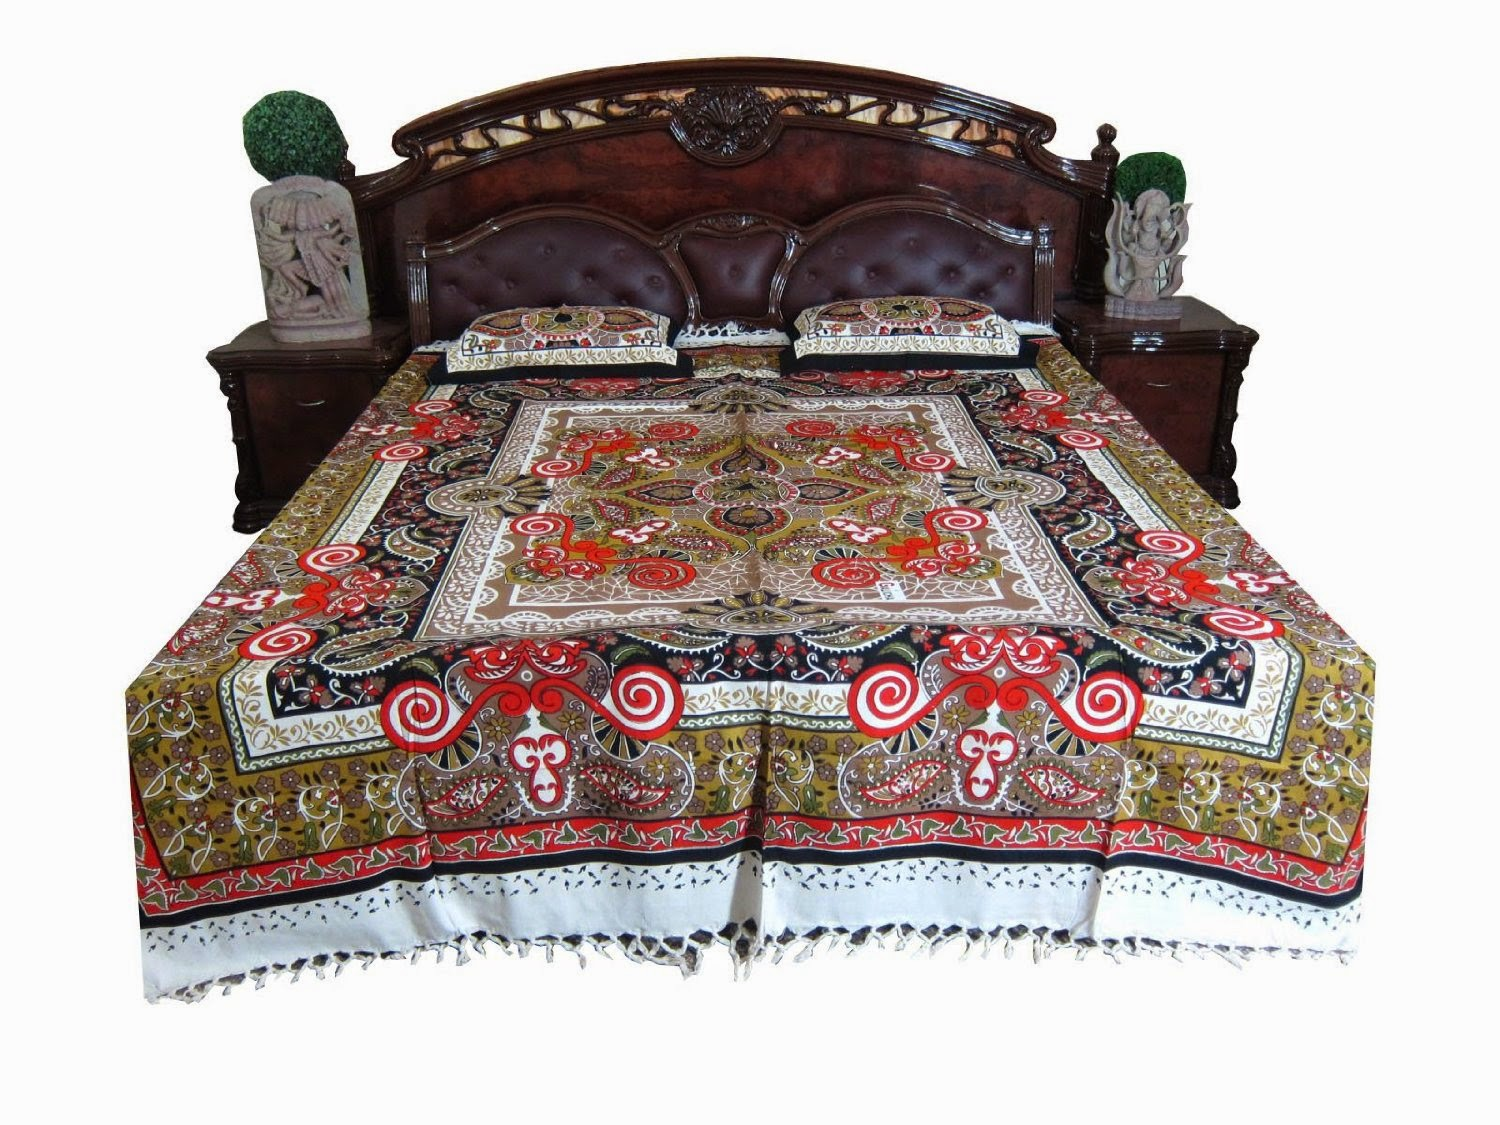 http://www.amazon.com/Mogul-Inspired-Authentic-Handloom-Bedspreads/dp/B00RCLJVUU/ref=sr_1_17?m=A1FLPADQPBV8TK&s=merchant-items&ie=UTF8&qid=1421835723&sr=1-17&keywords=bedspread